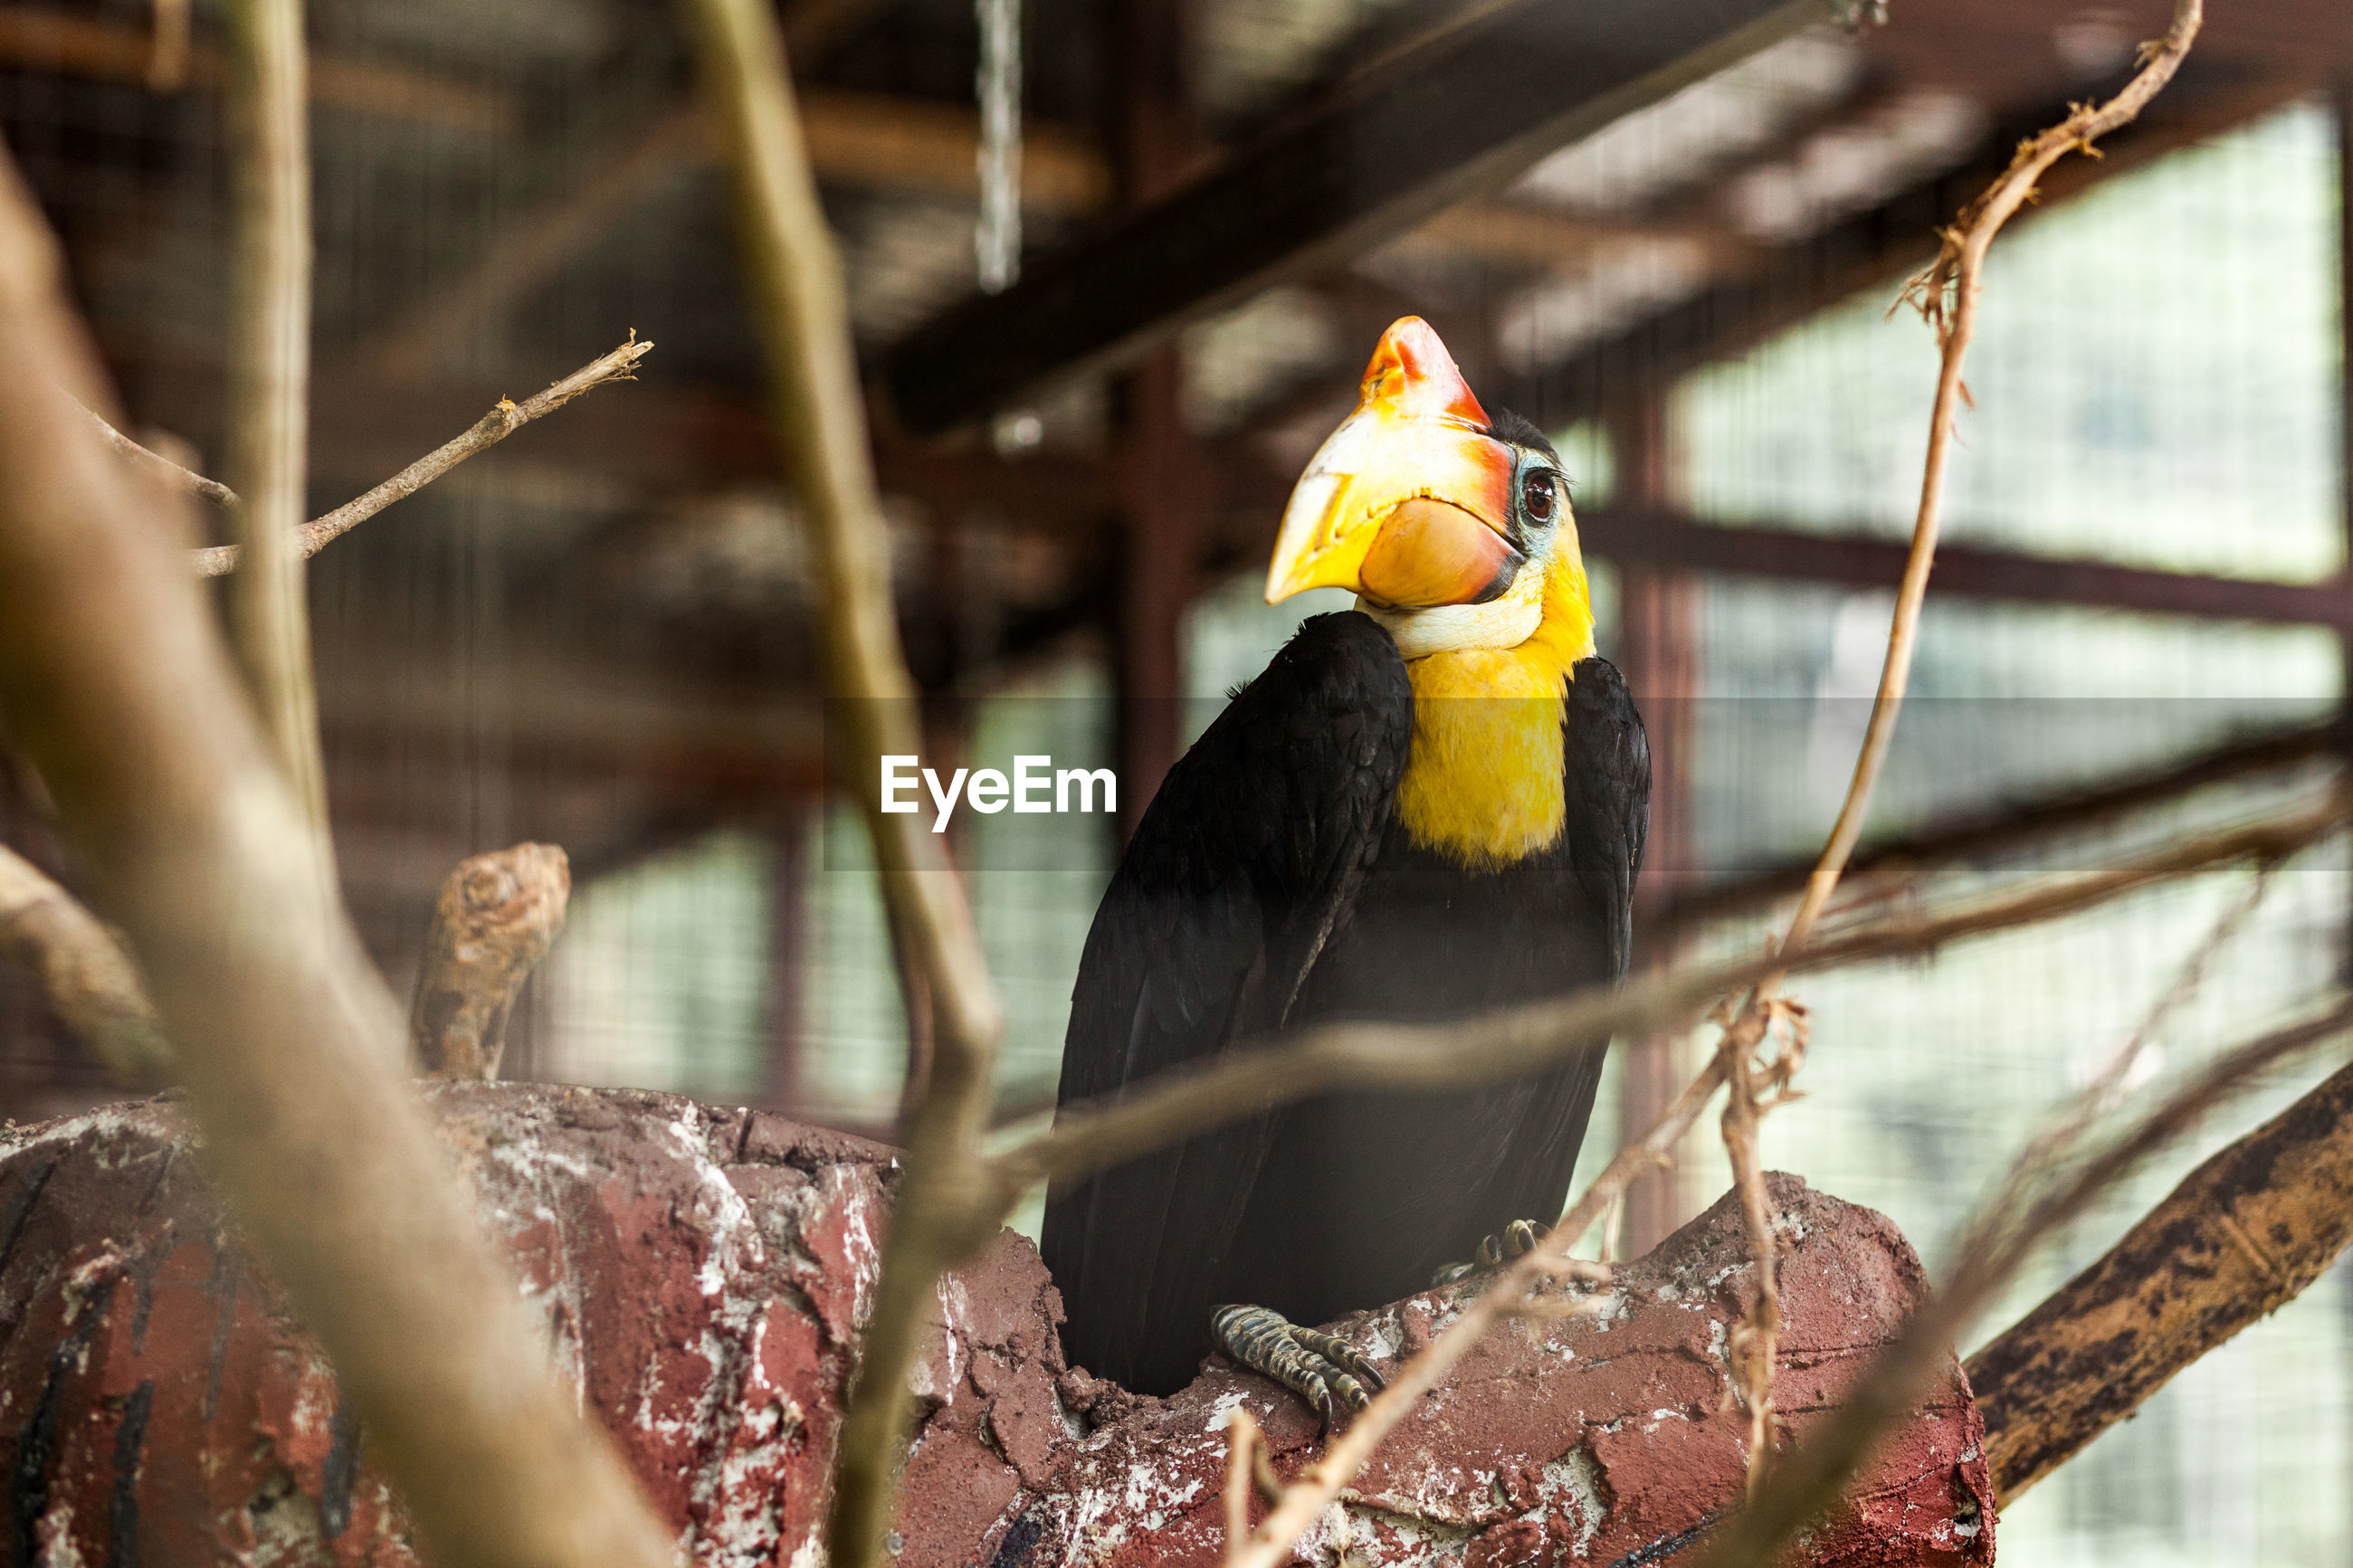 BIRD PERCHING ON A YELLOW CAGE